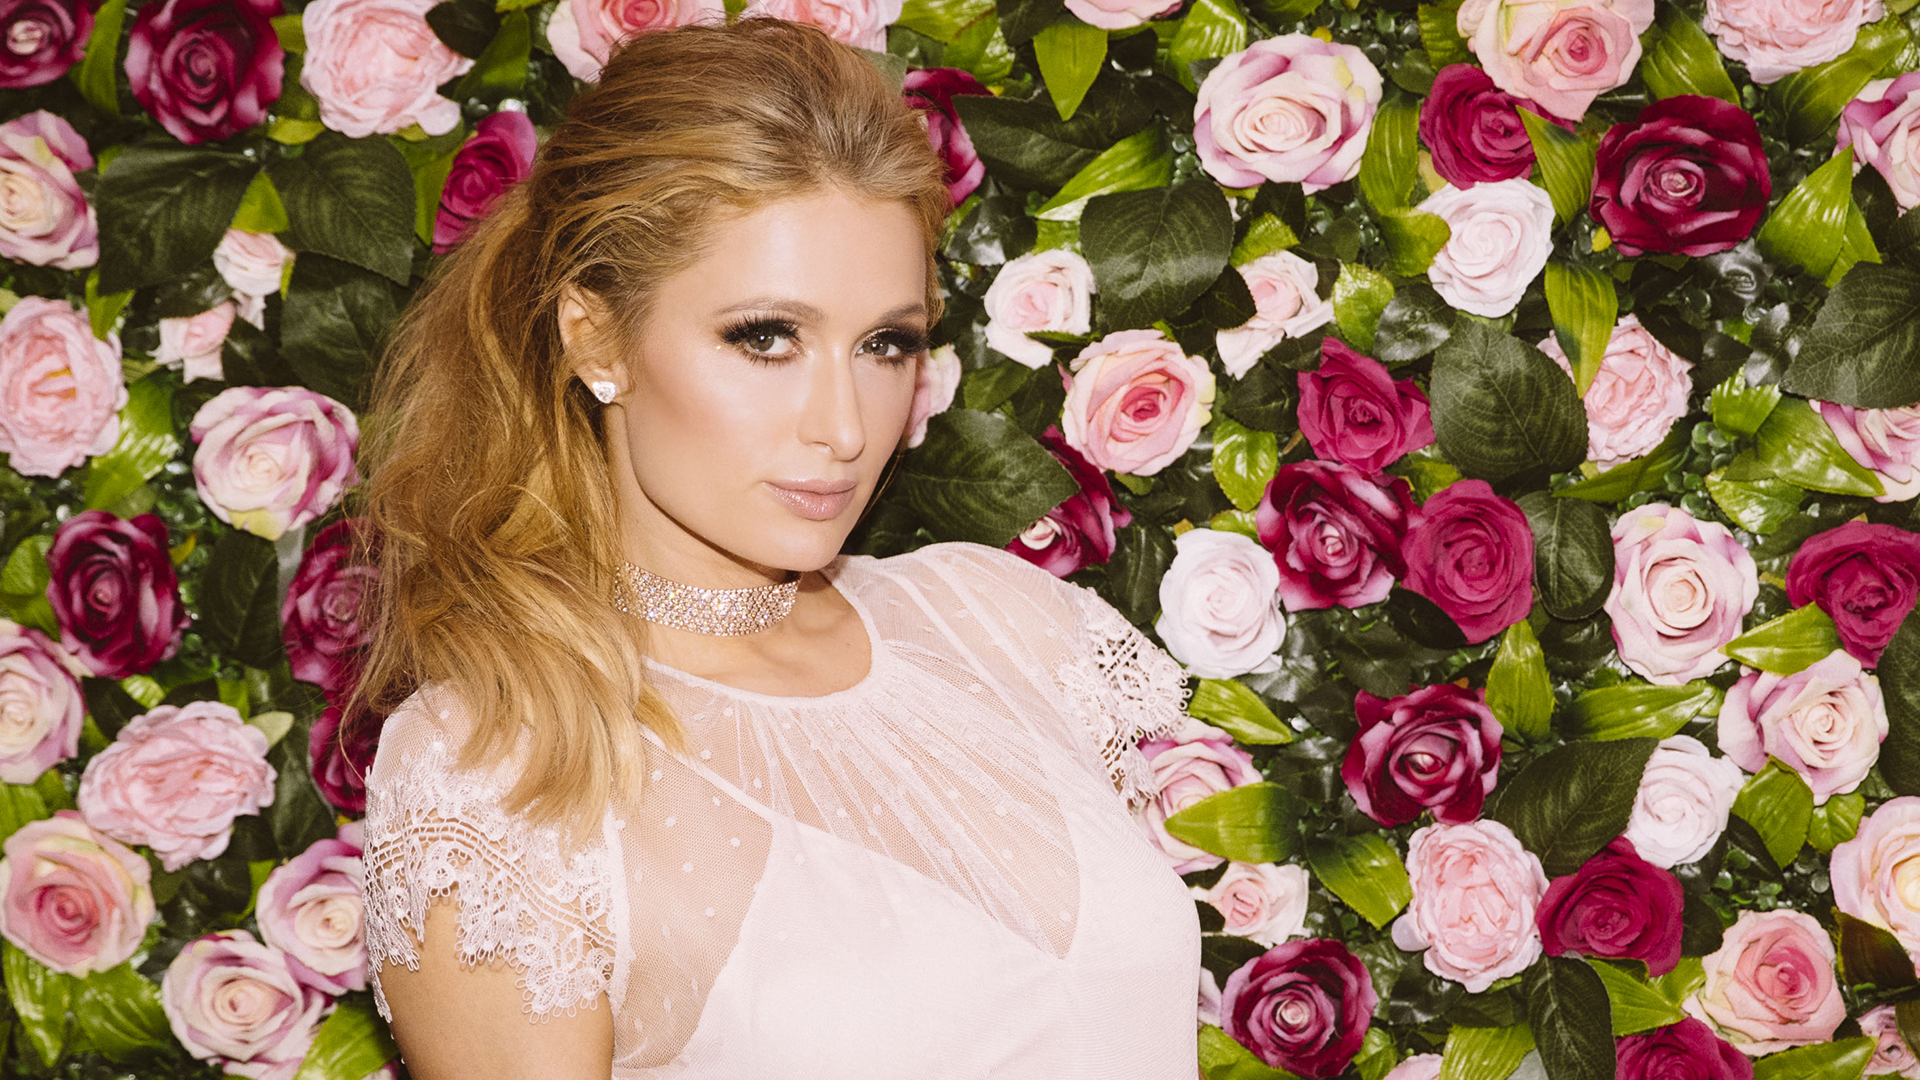 Paris Hilton Accused of Copying a Beauty Vlogger's Products for Her Makeup Line